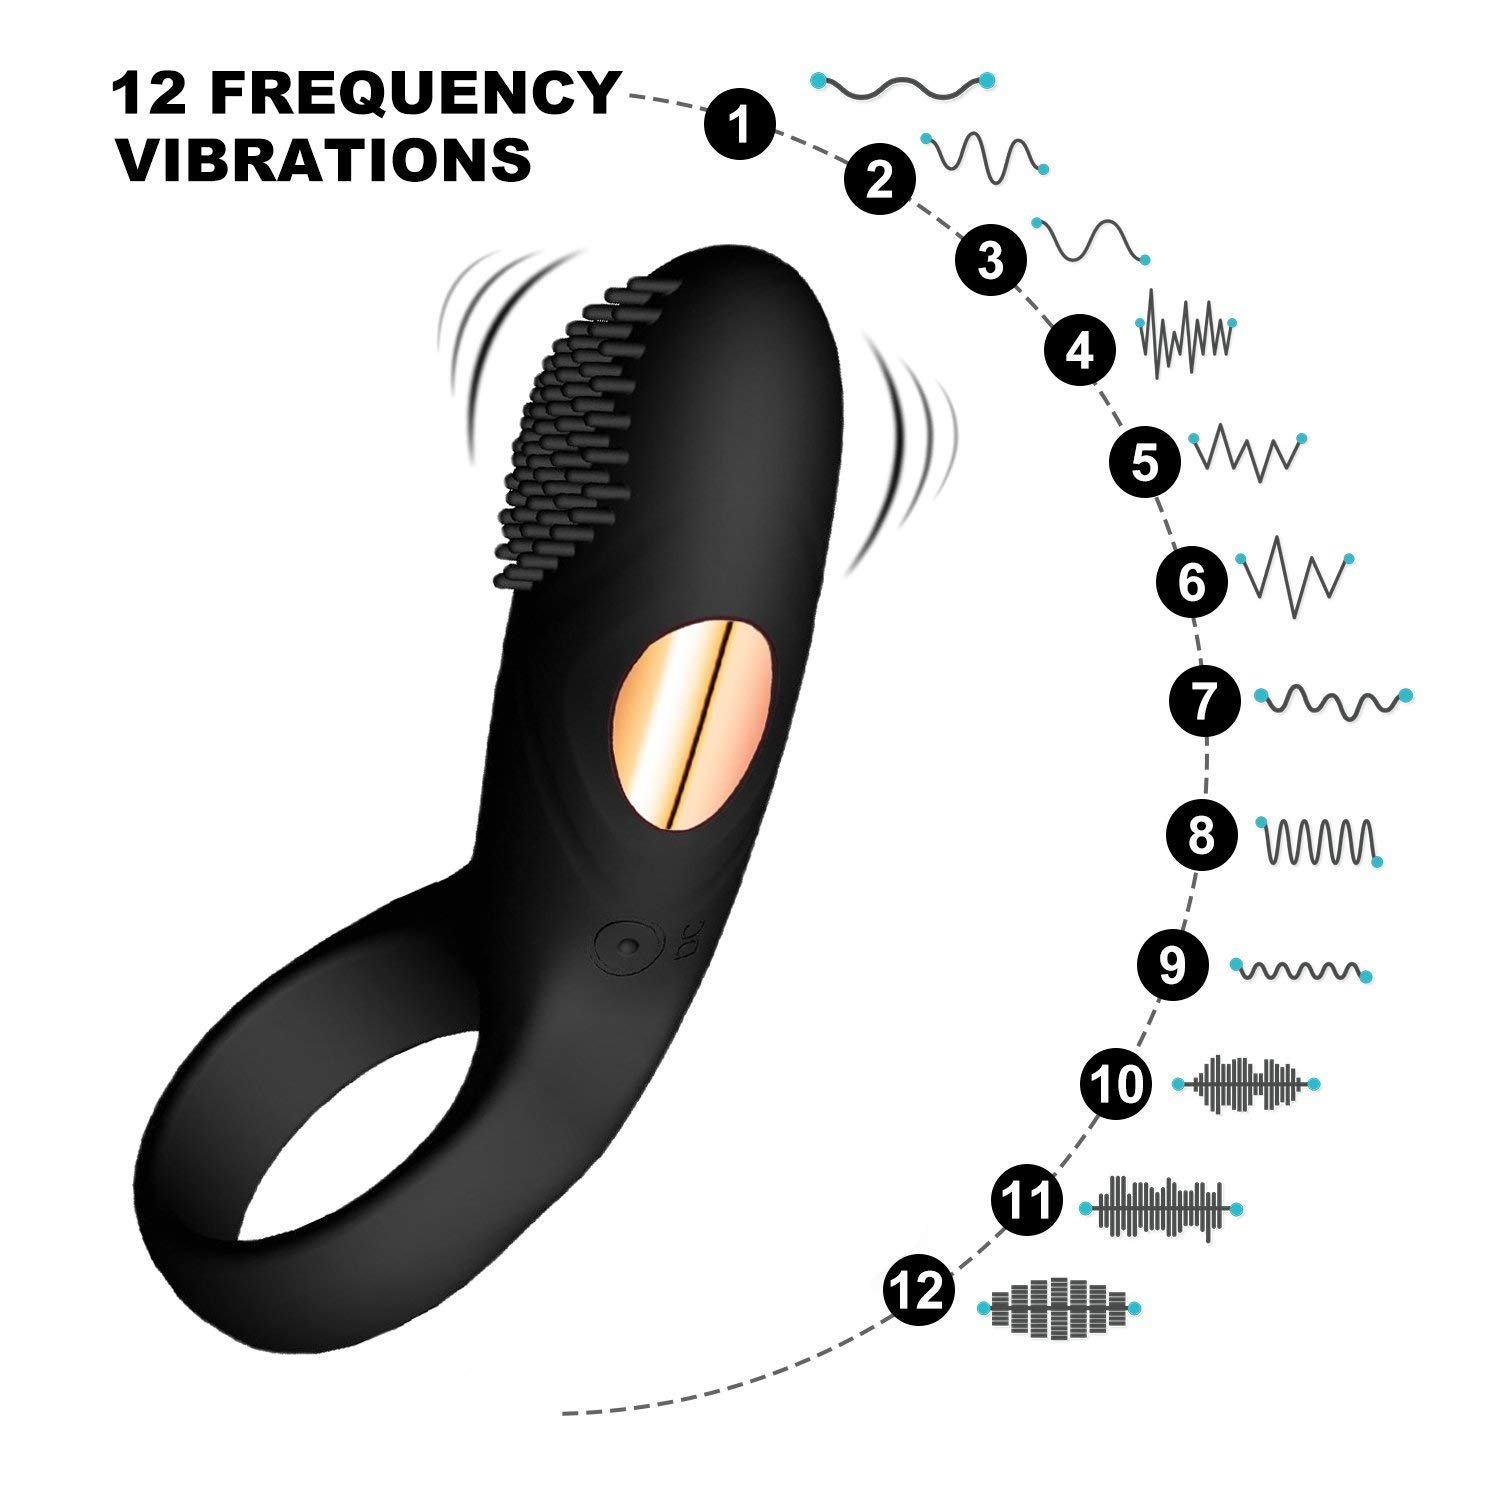 Vibrating Cock Ring Sex Toys - Waterproof Rechargeable 12-Speed Vibrations Silicone Penis Ring Vibrator Longer Lasting Erections Ring -Clitoral Stimulator Vibrator for Male or Couples